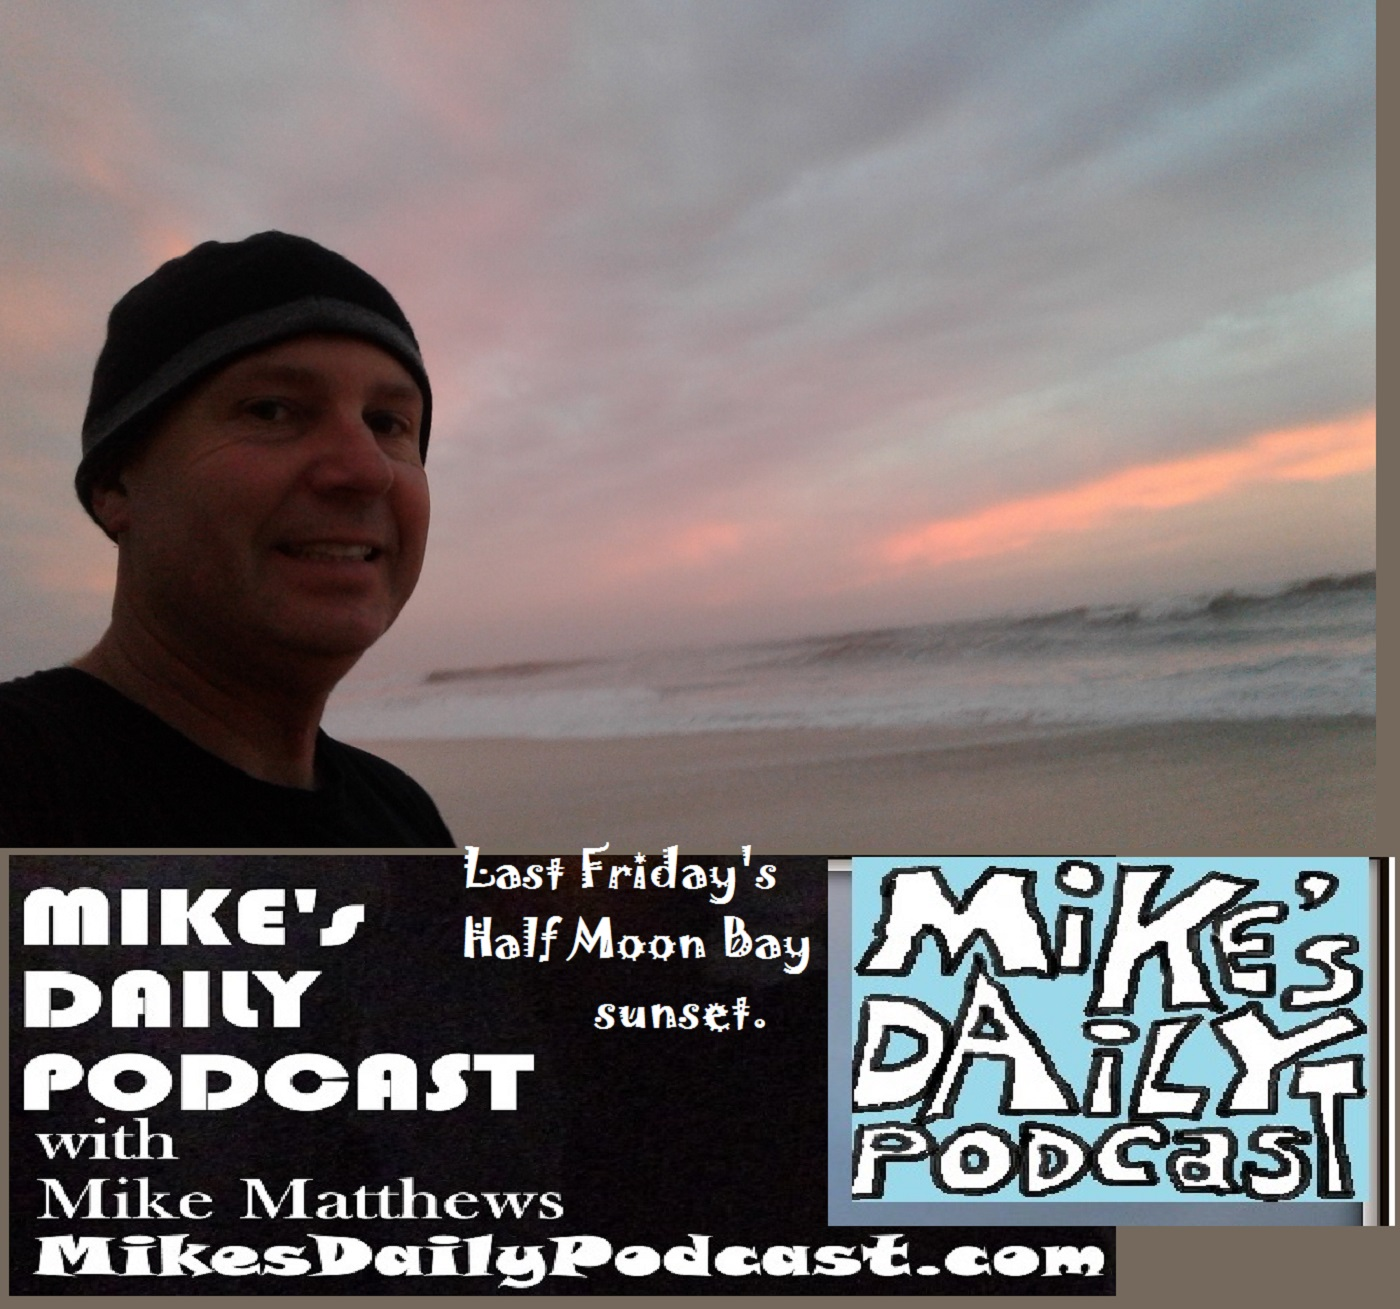 mikes-daily-podcast-1223-half-moon-bay-sunset